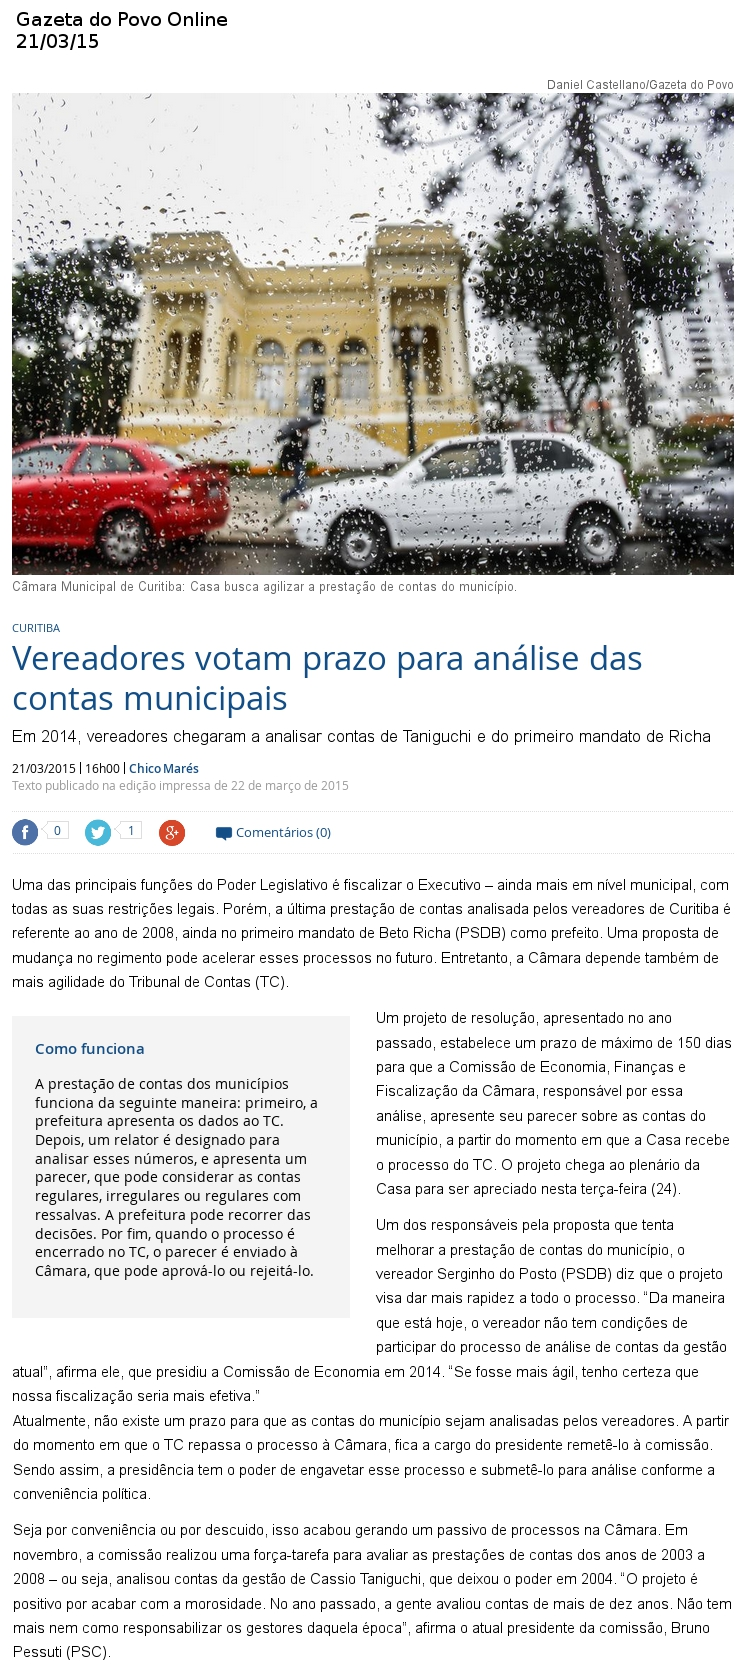 gazeta do povo online 2503